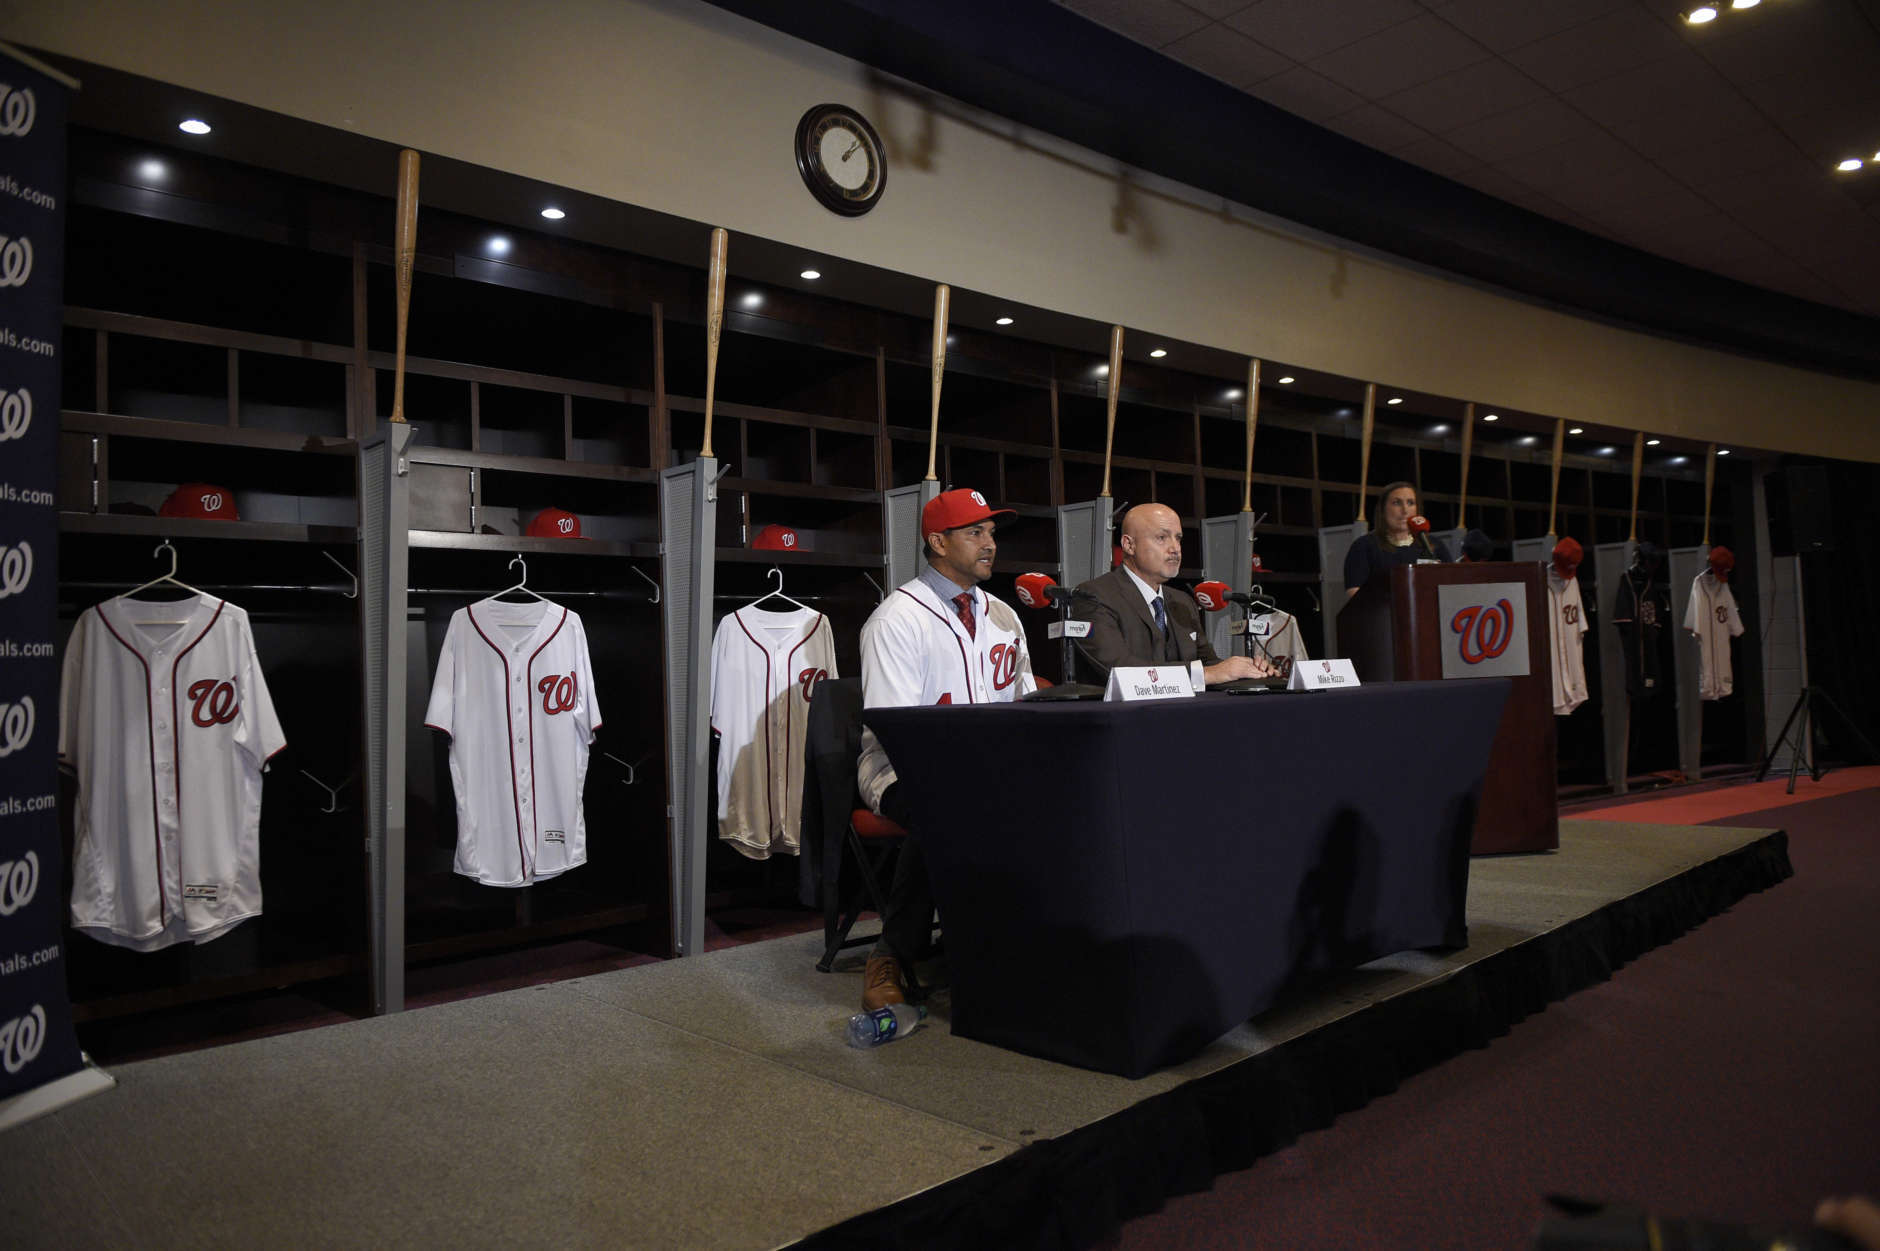 Washington Nationals new manager Dave Martinez, left, speaks alongside general manager Mike Rizzo during a baseball press conference, Thursday, Nov. 2, 2017, in Washington. (AP Photo/Nick Wass)